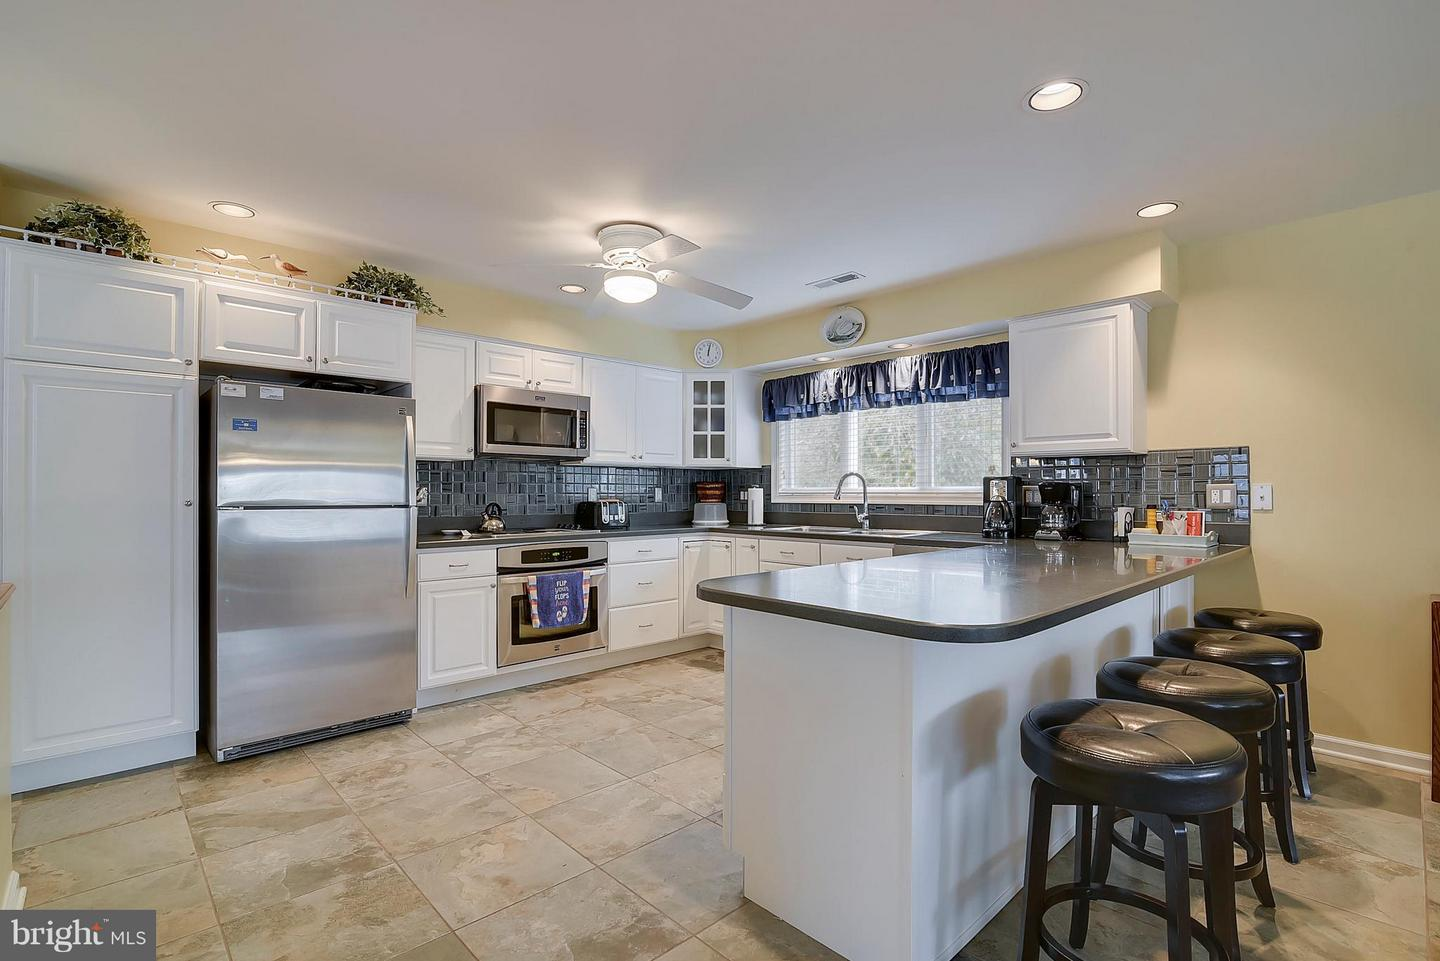 1002344128-300986984739-2018-11-07-14-16-58 39634 Seatrout Cir | North Bethany, DE Real Estate For Sale | MLS# 1002344128  - 1st Choice Properties